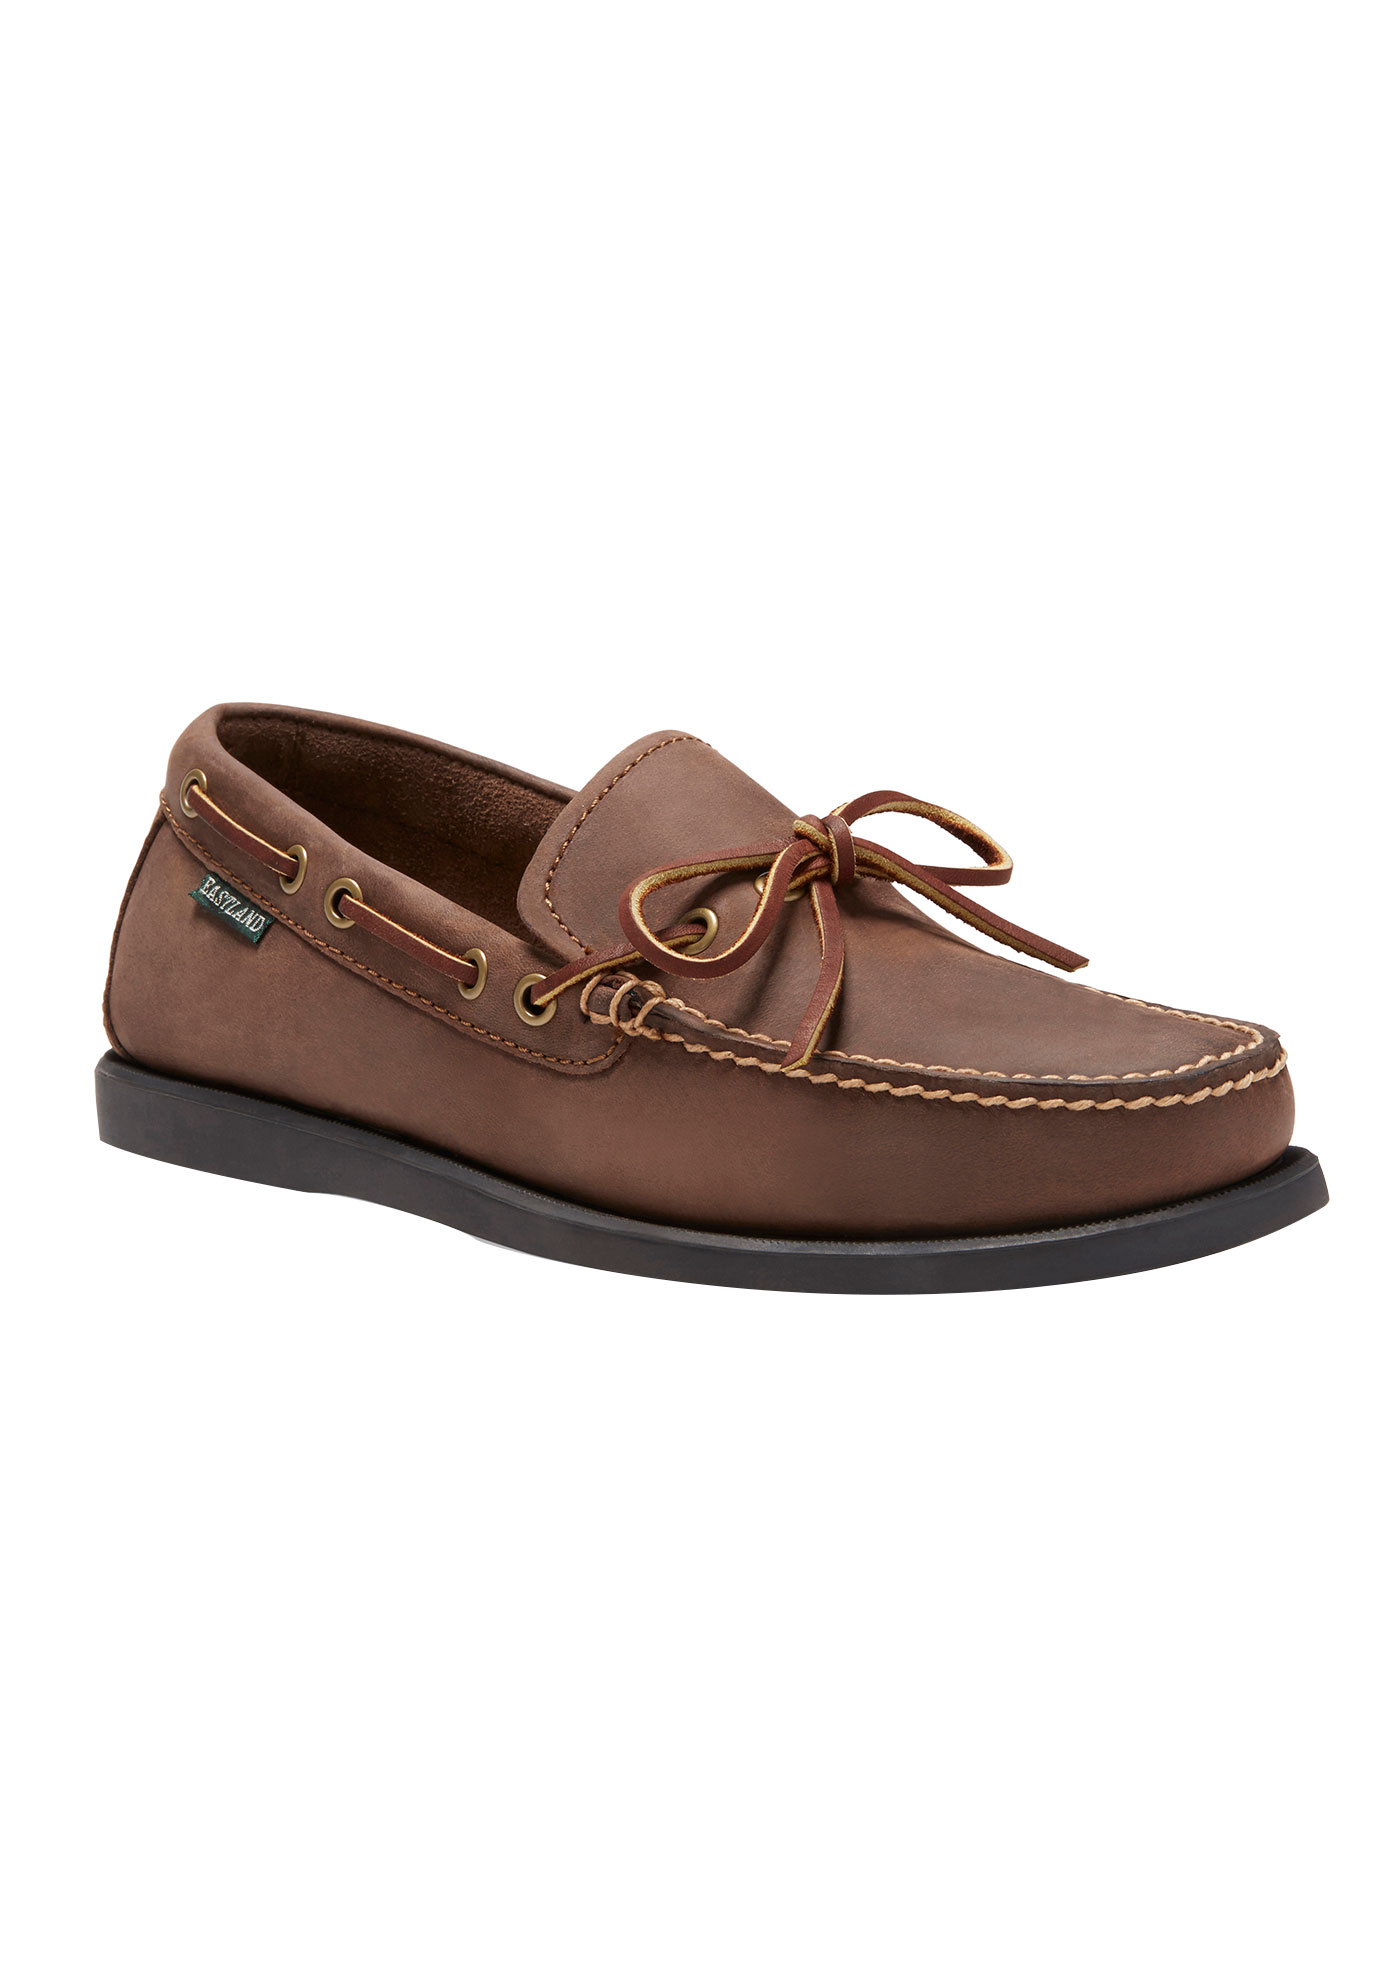 Yarmouth Camp Moc Slip-Ons by Eastland